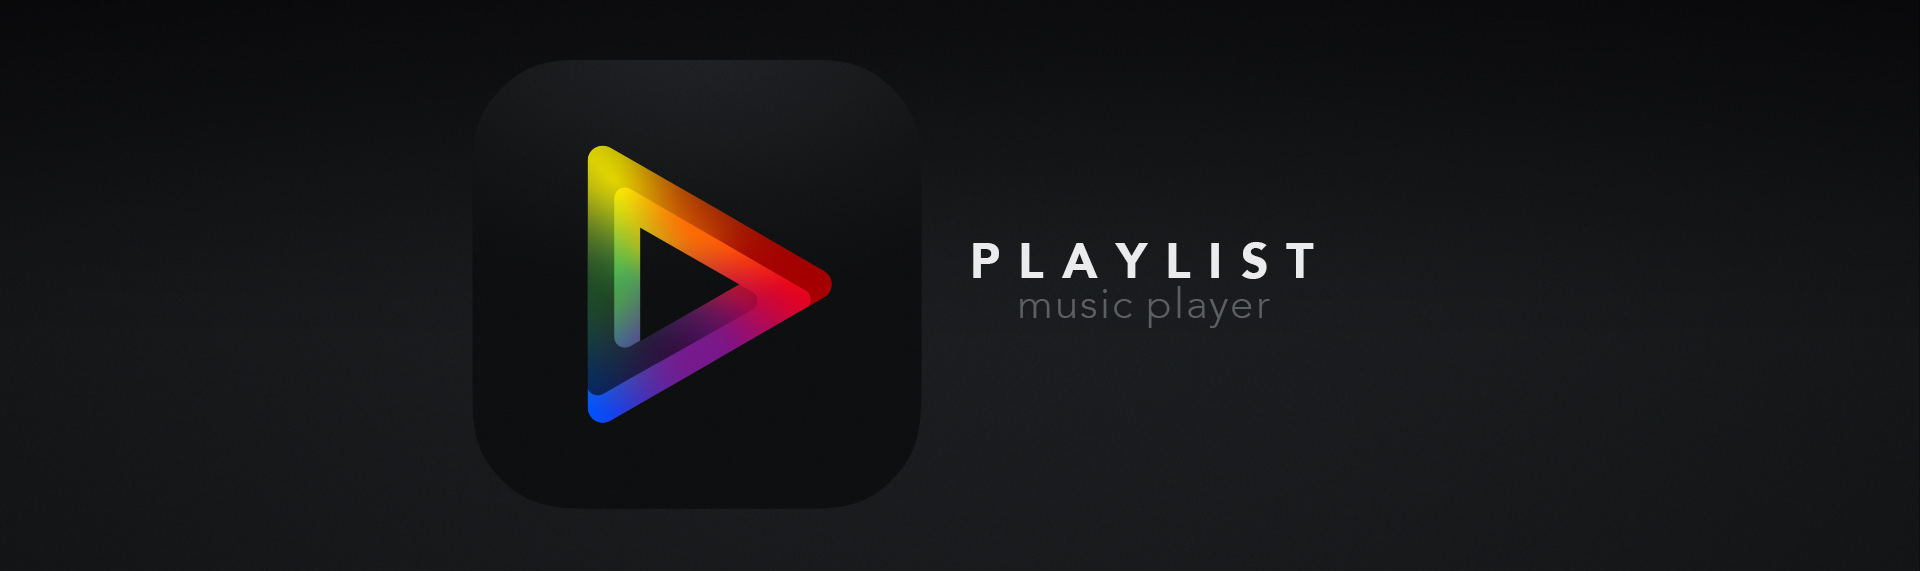 """Playlist Music Player  Brand Identity Design, Product Name Creation  The brand identity for Skins Factory's iOS music player app for iPhone. Because colors & music both evoke a wide range of human emotions, we took a stylized """"play"""" icon and infused it with a full spectrum of colors. This is symbolic of the symmetry that music and colors share, when it comes to their affect on our feelings when we're engaged with them. This chromatic design language was carried over into the UI of the player, as colors permeate the design and offer emotionality to the user."""